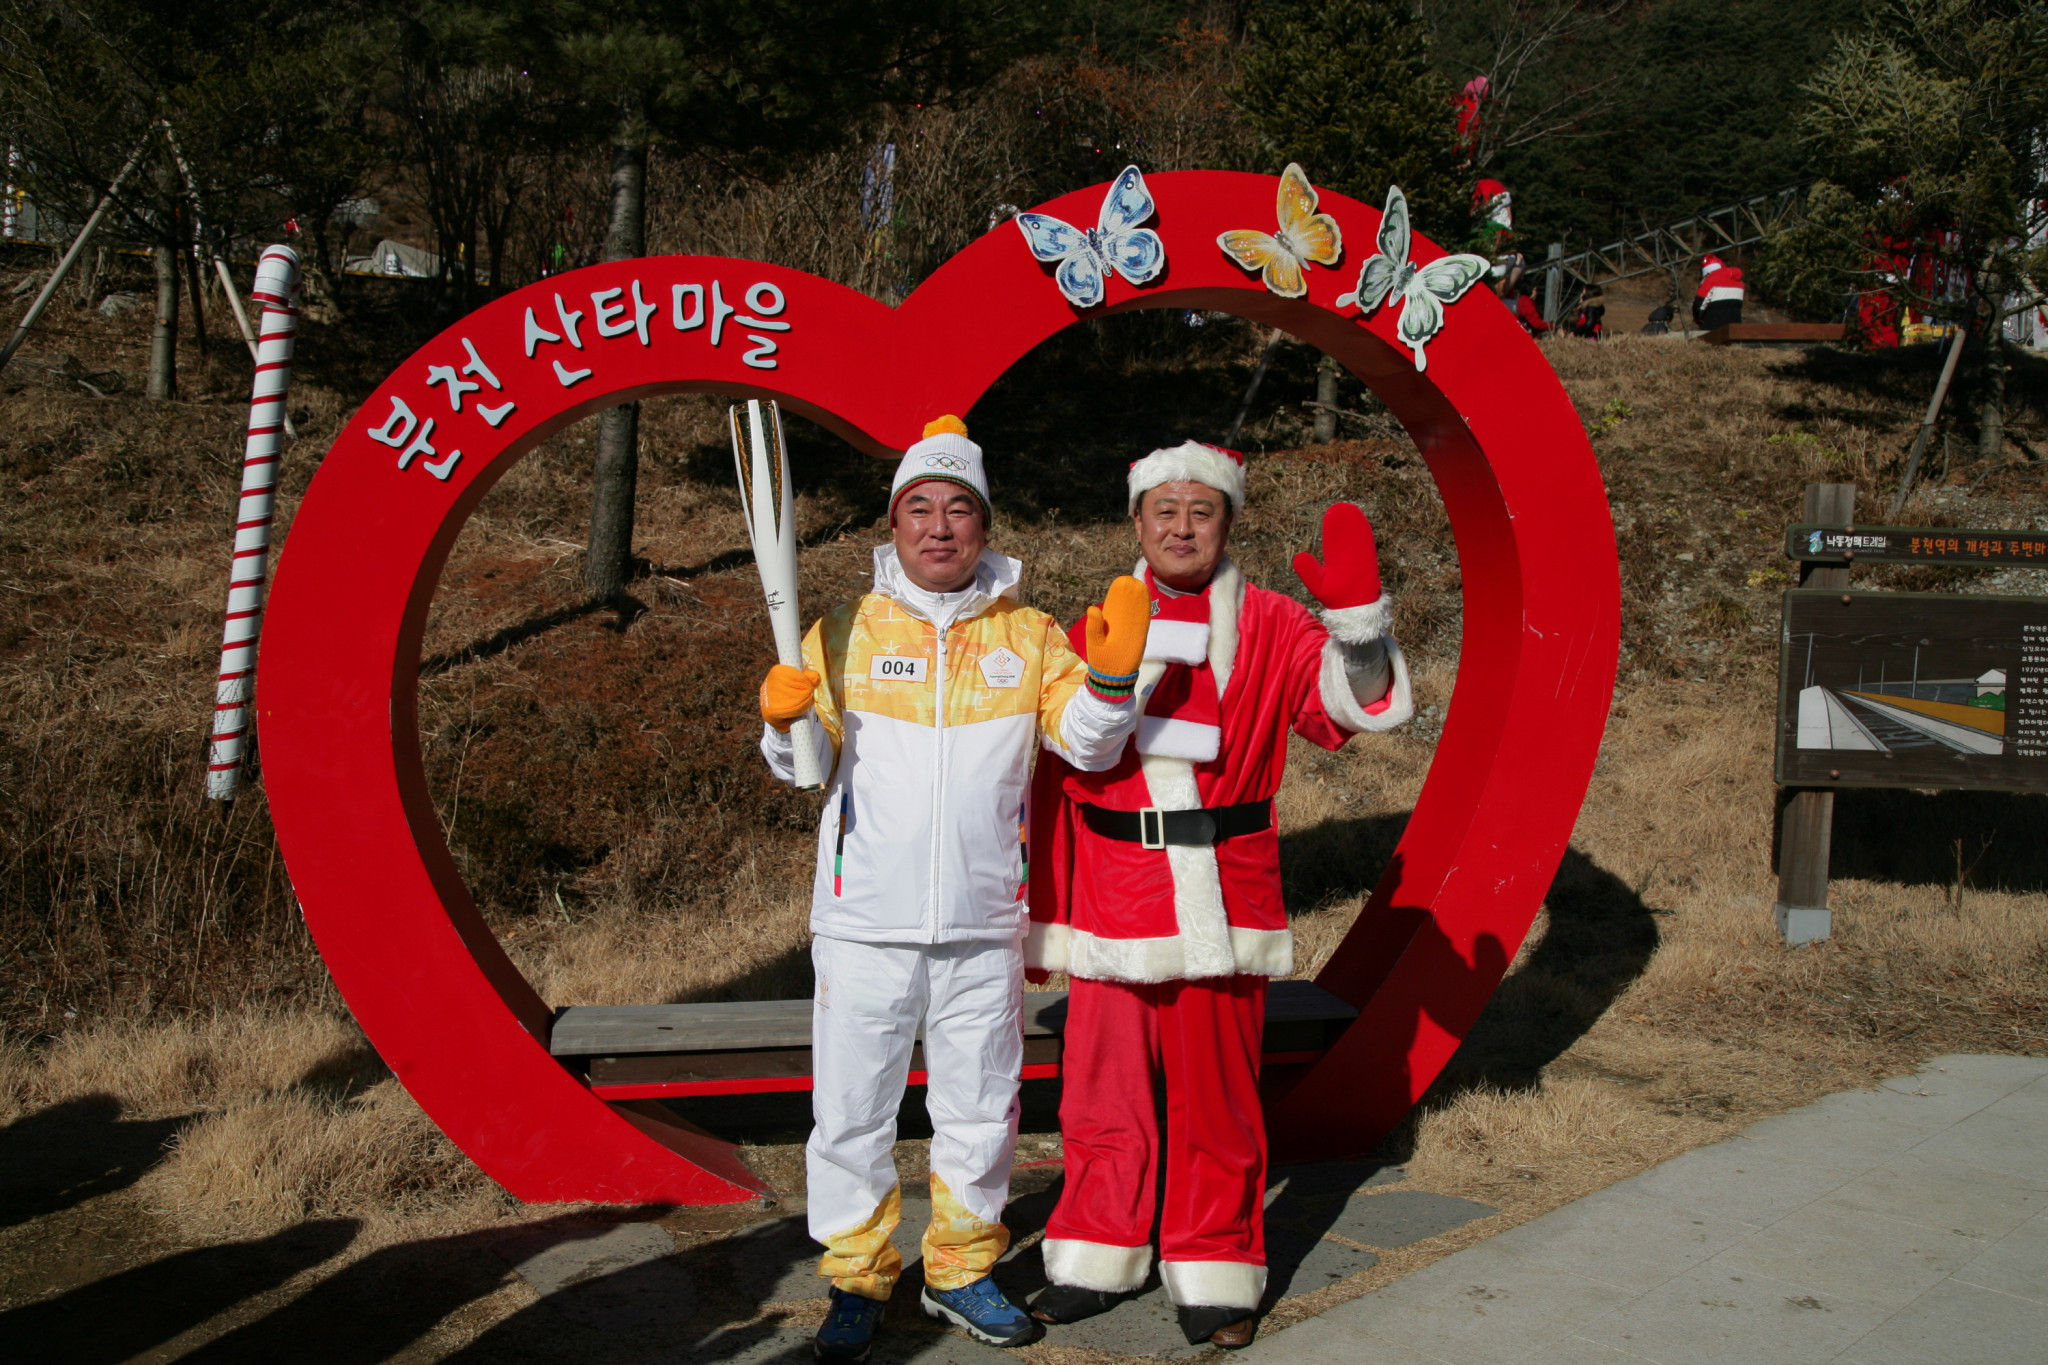 Pyeongchang 2018 Torch Relay takes on Christmas-feel as Olympic year approaches